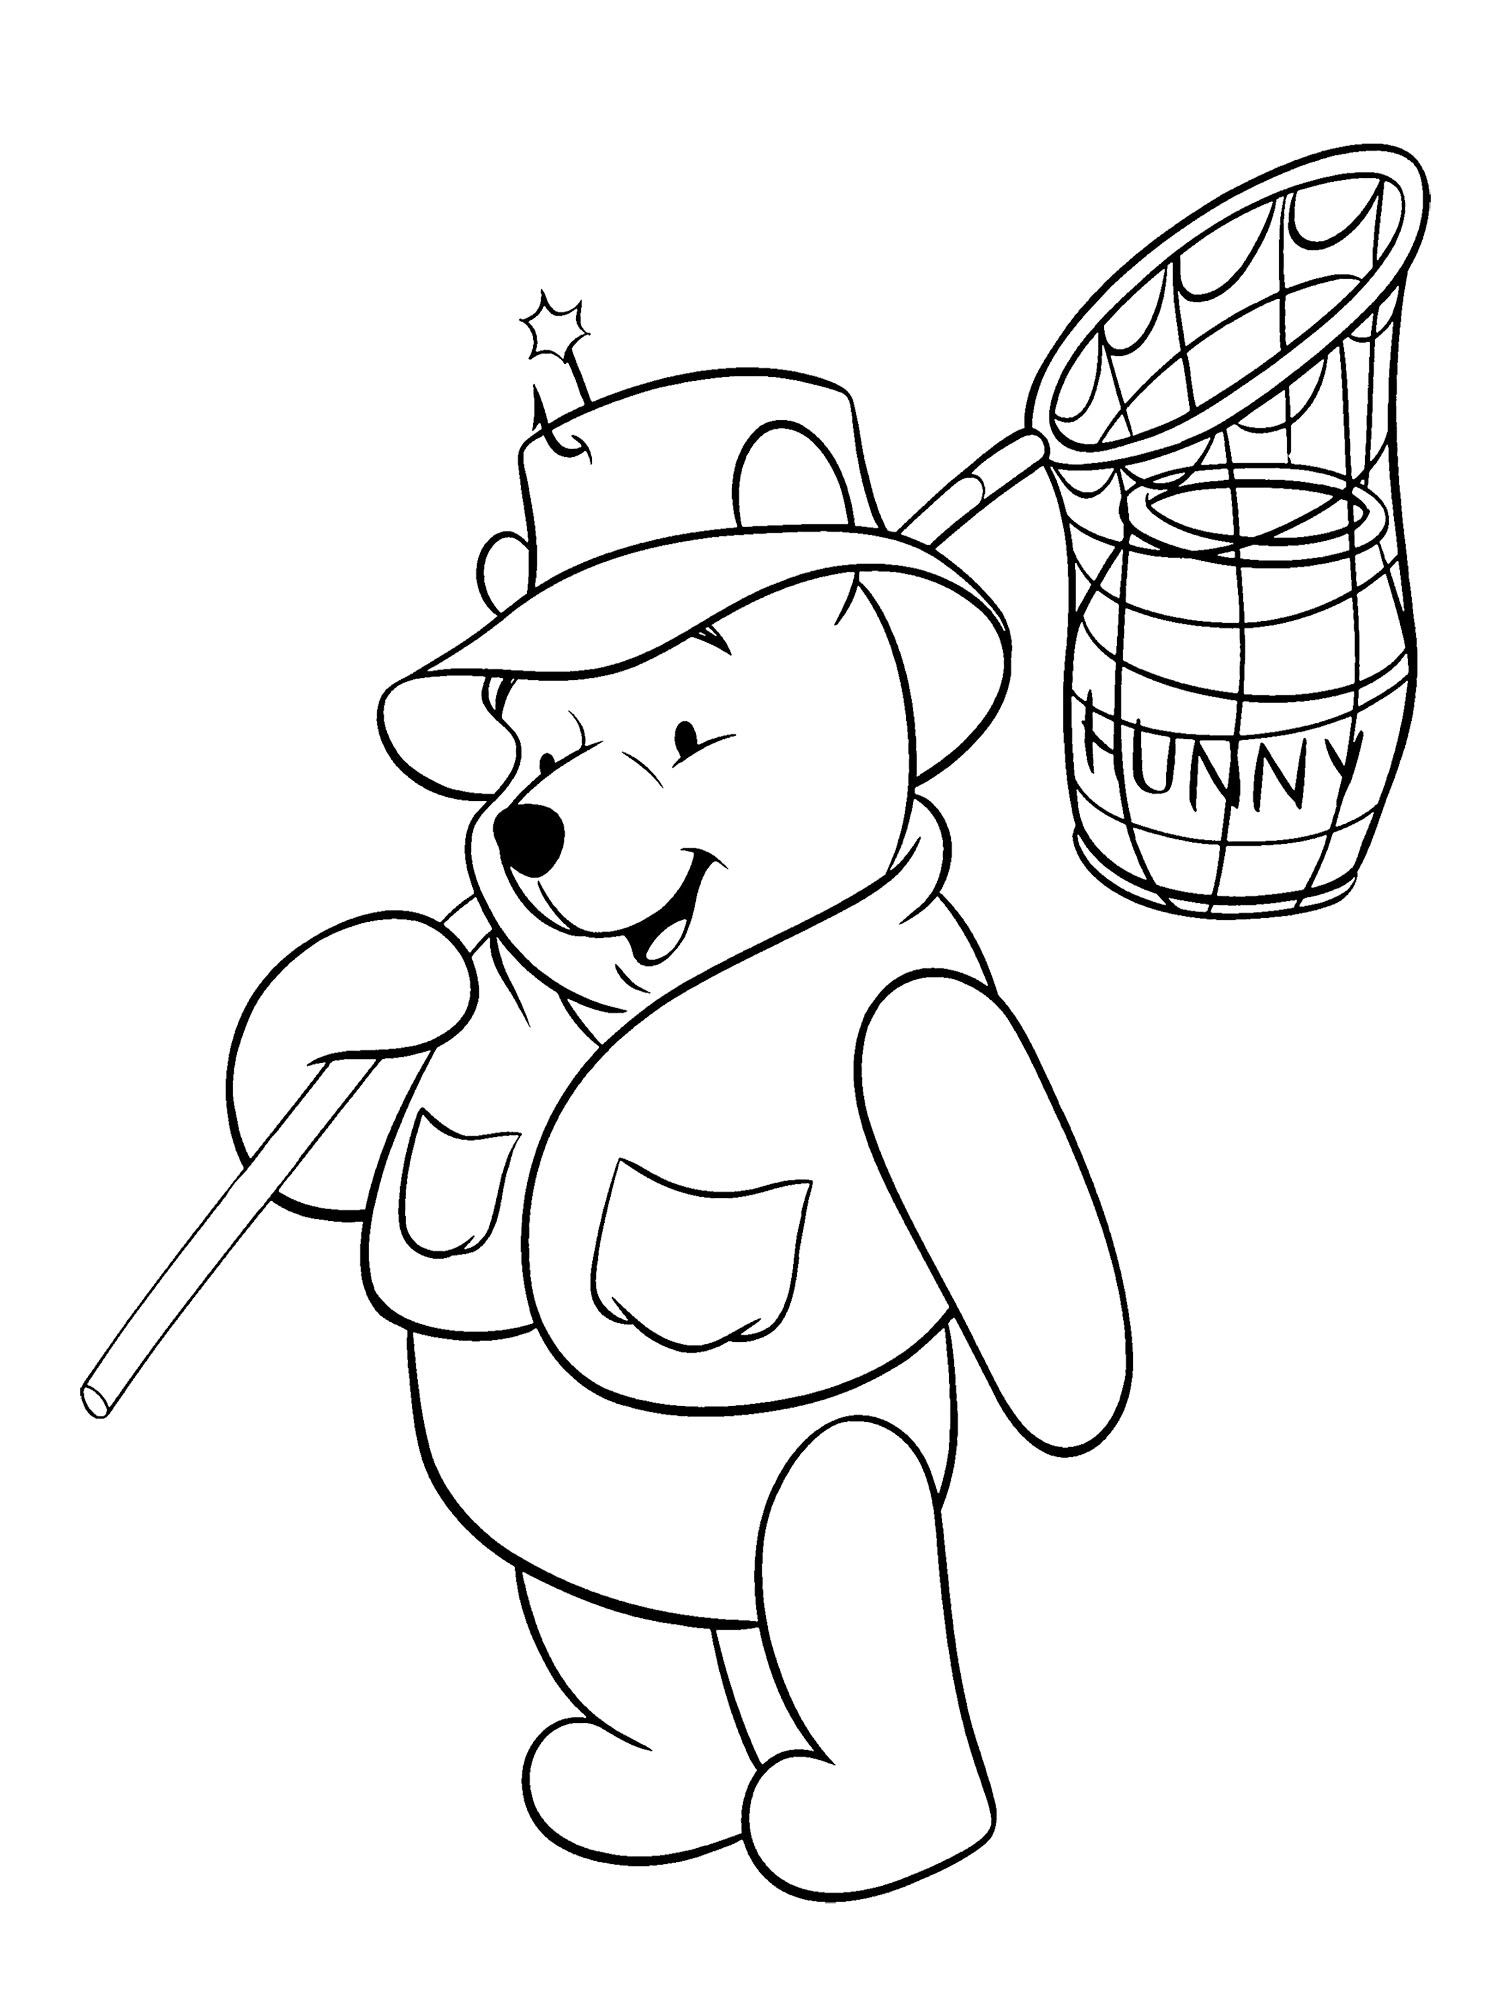 Winnie The Pooh Looking For Food Coloring Page Coloring Pages